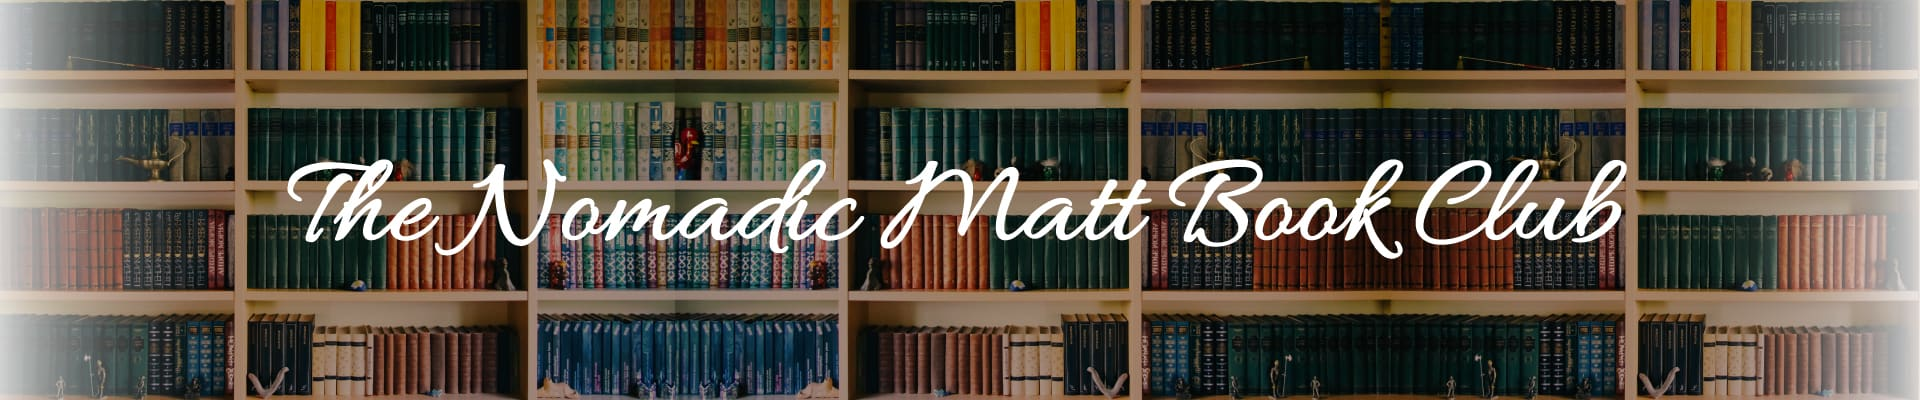 The Nomadic Matt Book Club